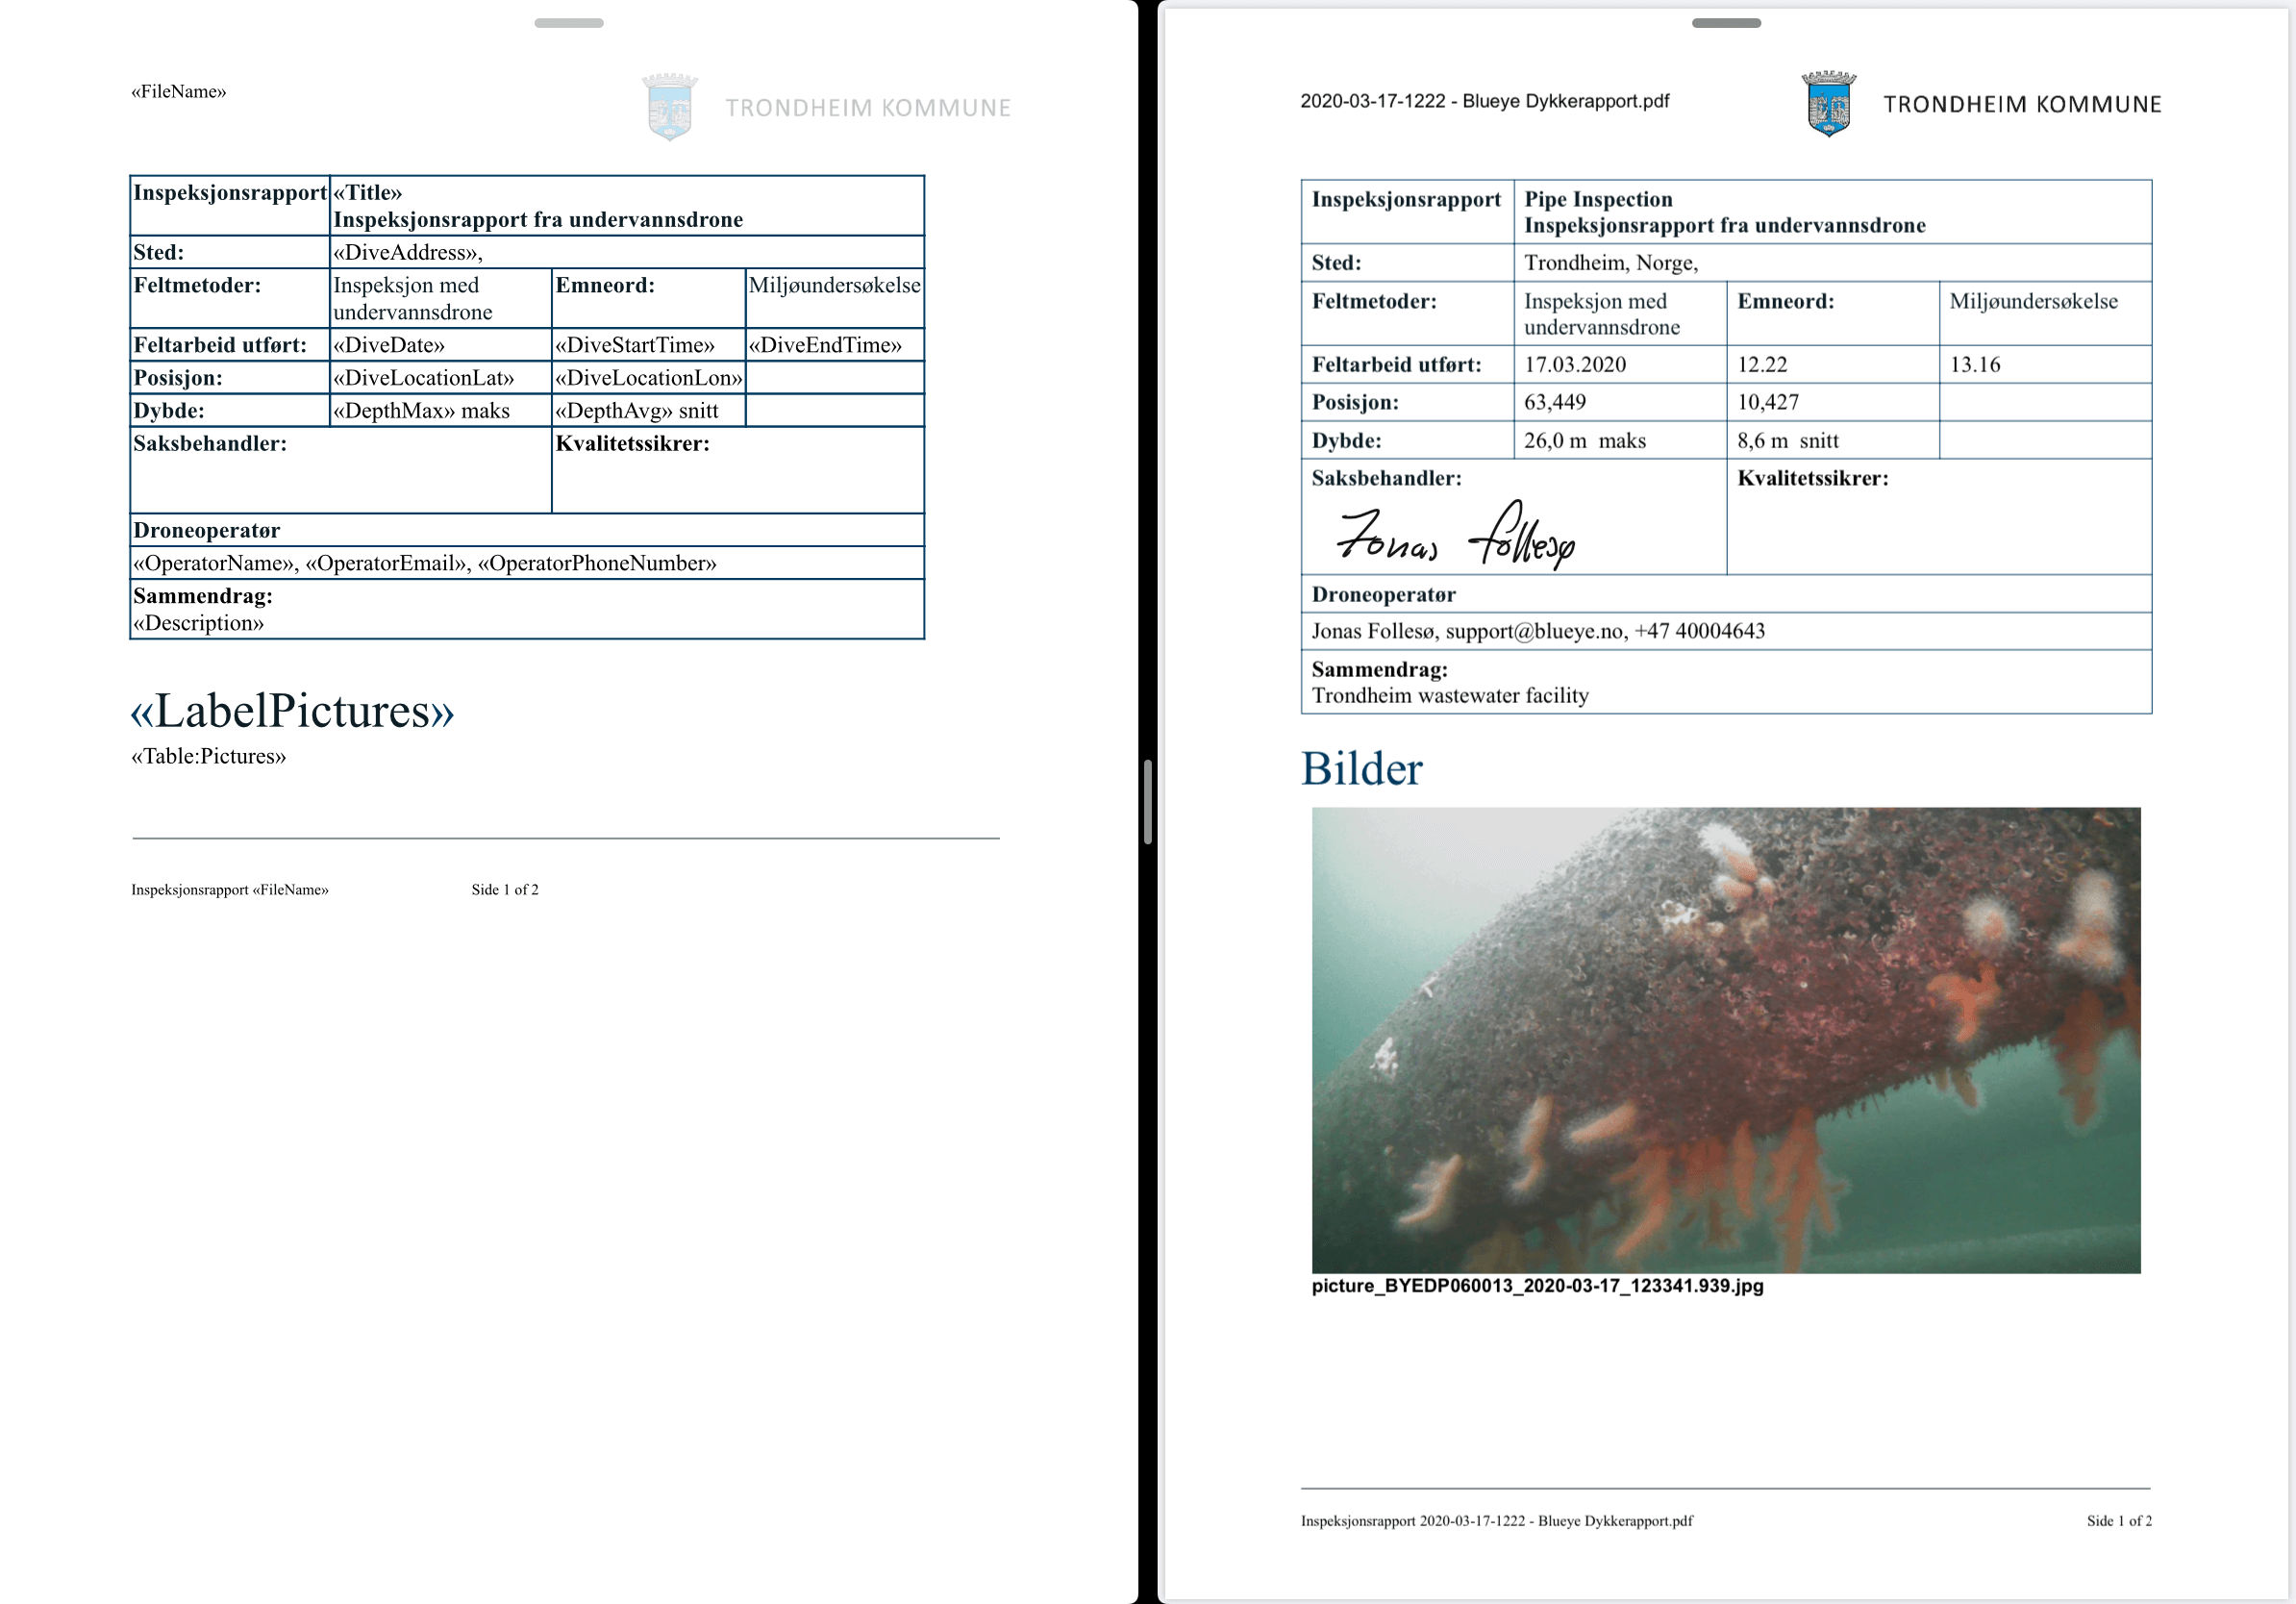 Example of a custom template on the left, and the generated report on the right. This is not a real template or report and only created for testing purposes.